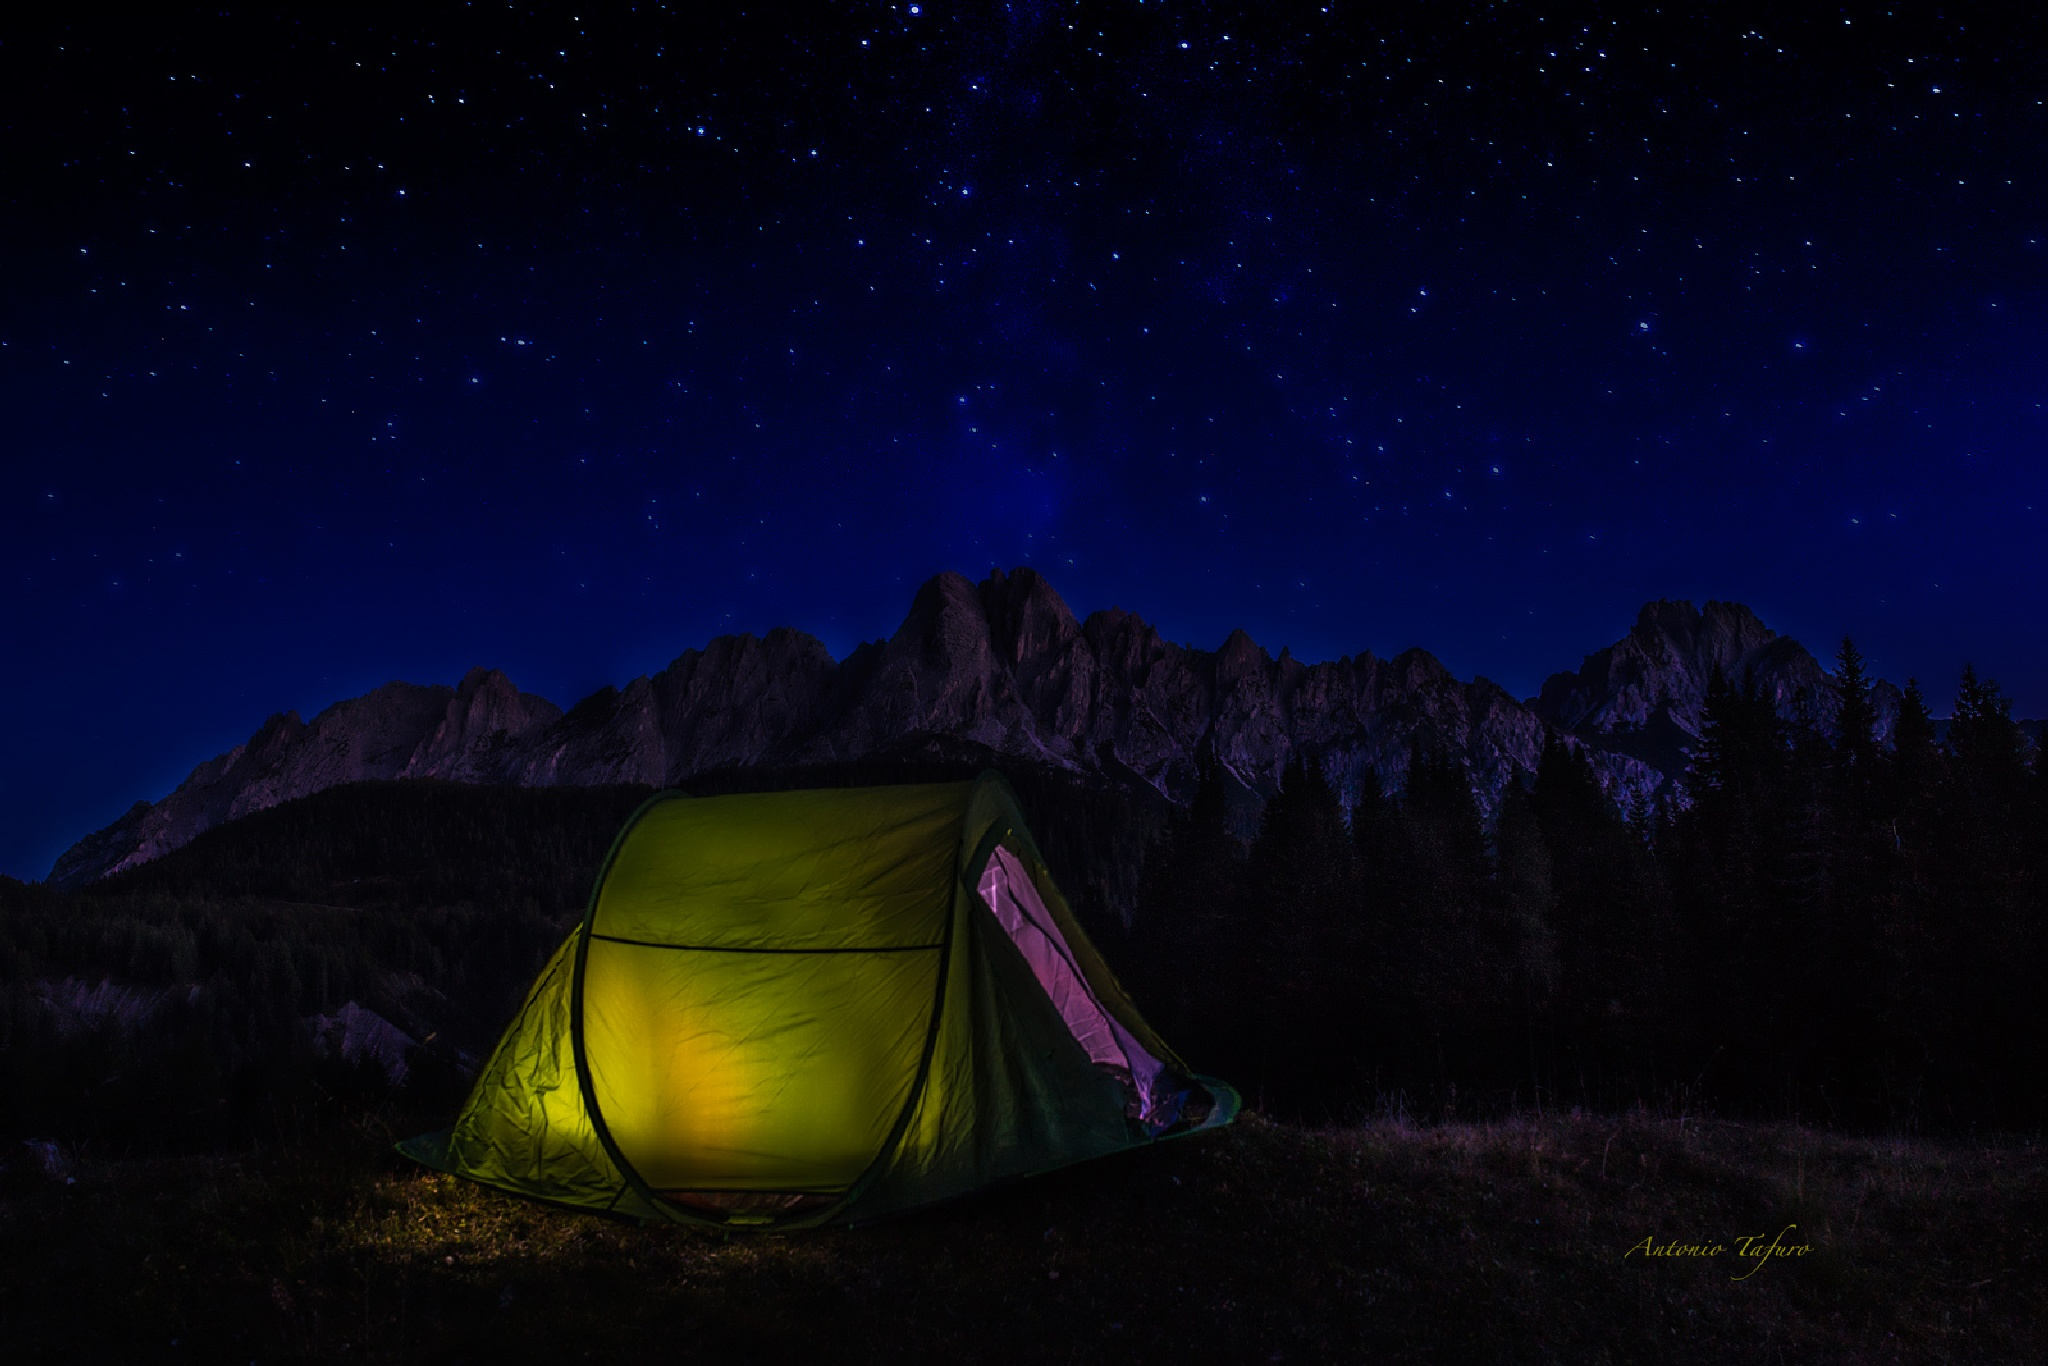 a tent under a sky of stars by Antonio Tafuro